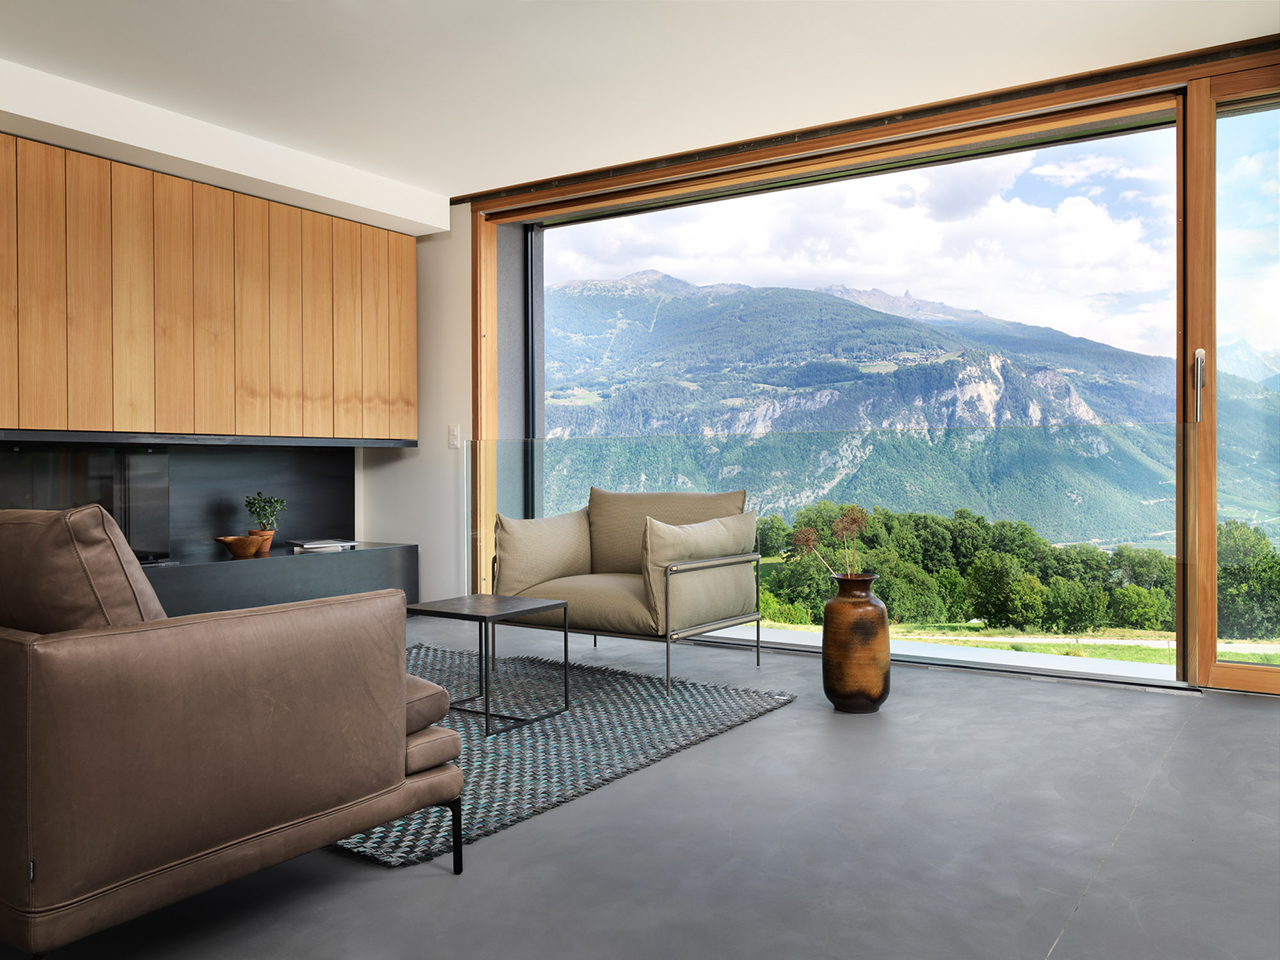 The living room shows off amazing views of the slopes, it's done with sleek black surfaces and wood, the furniture is contemporary